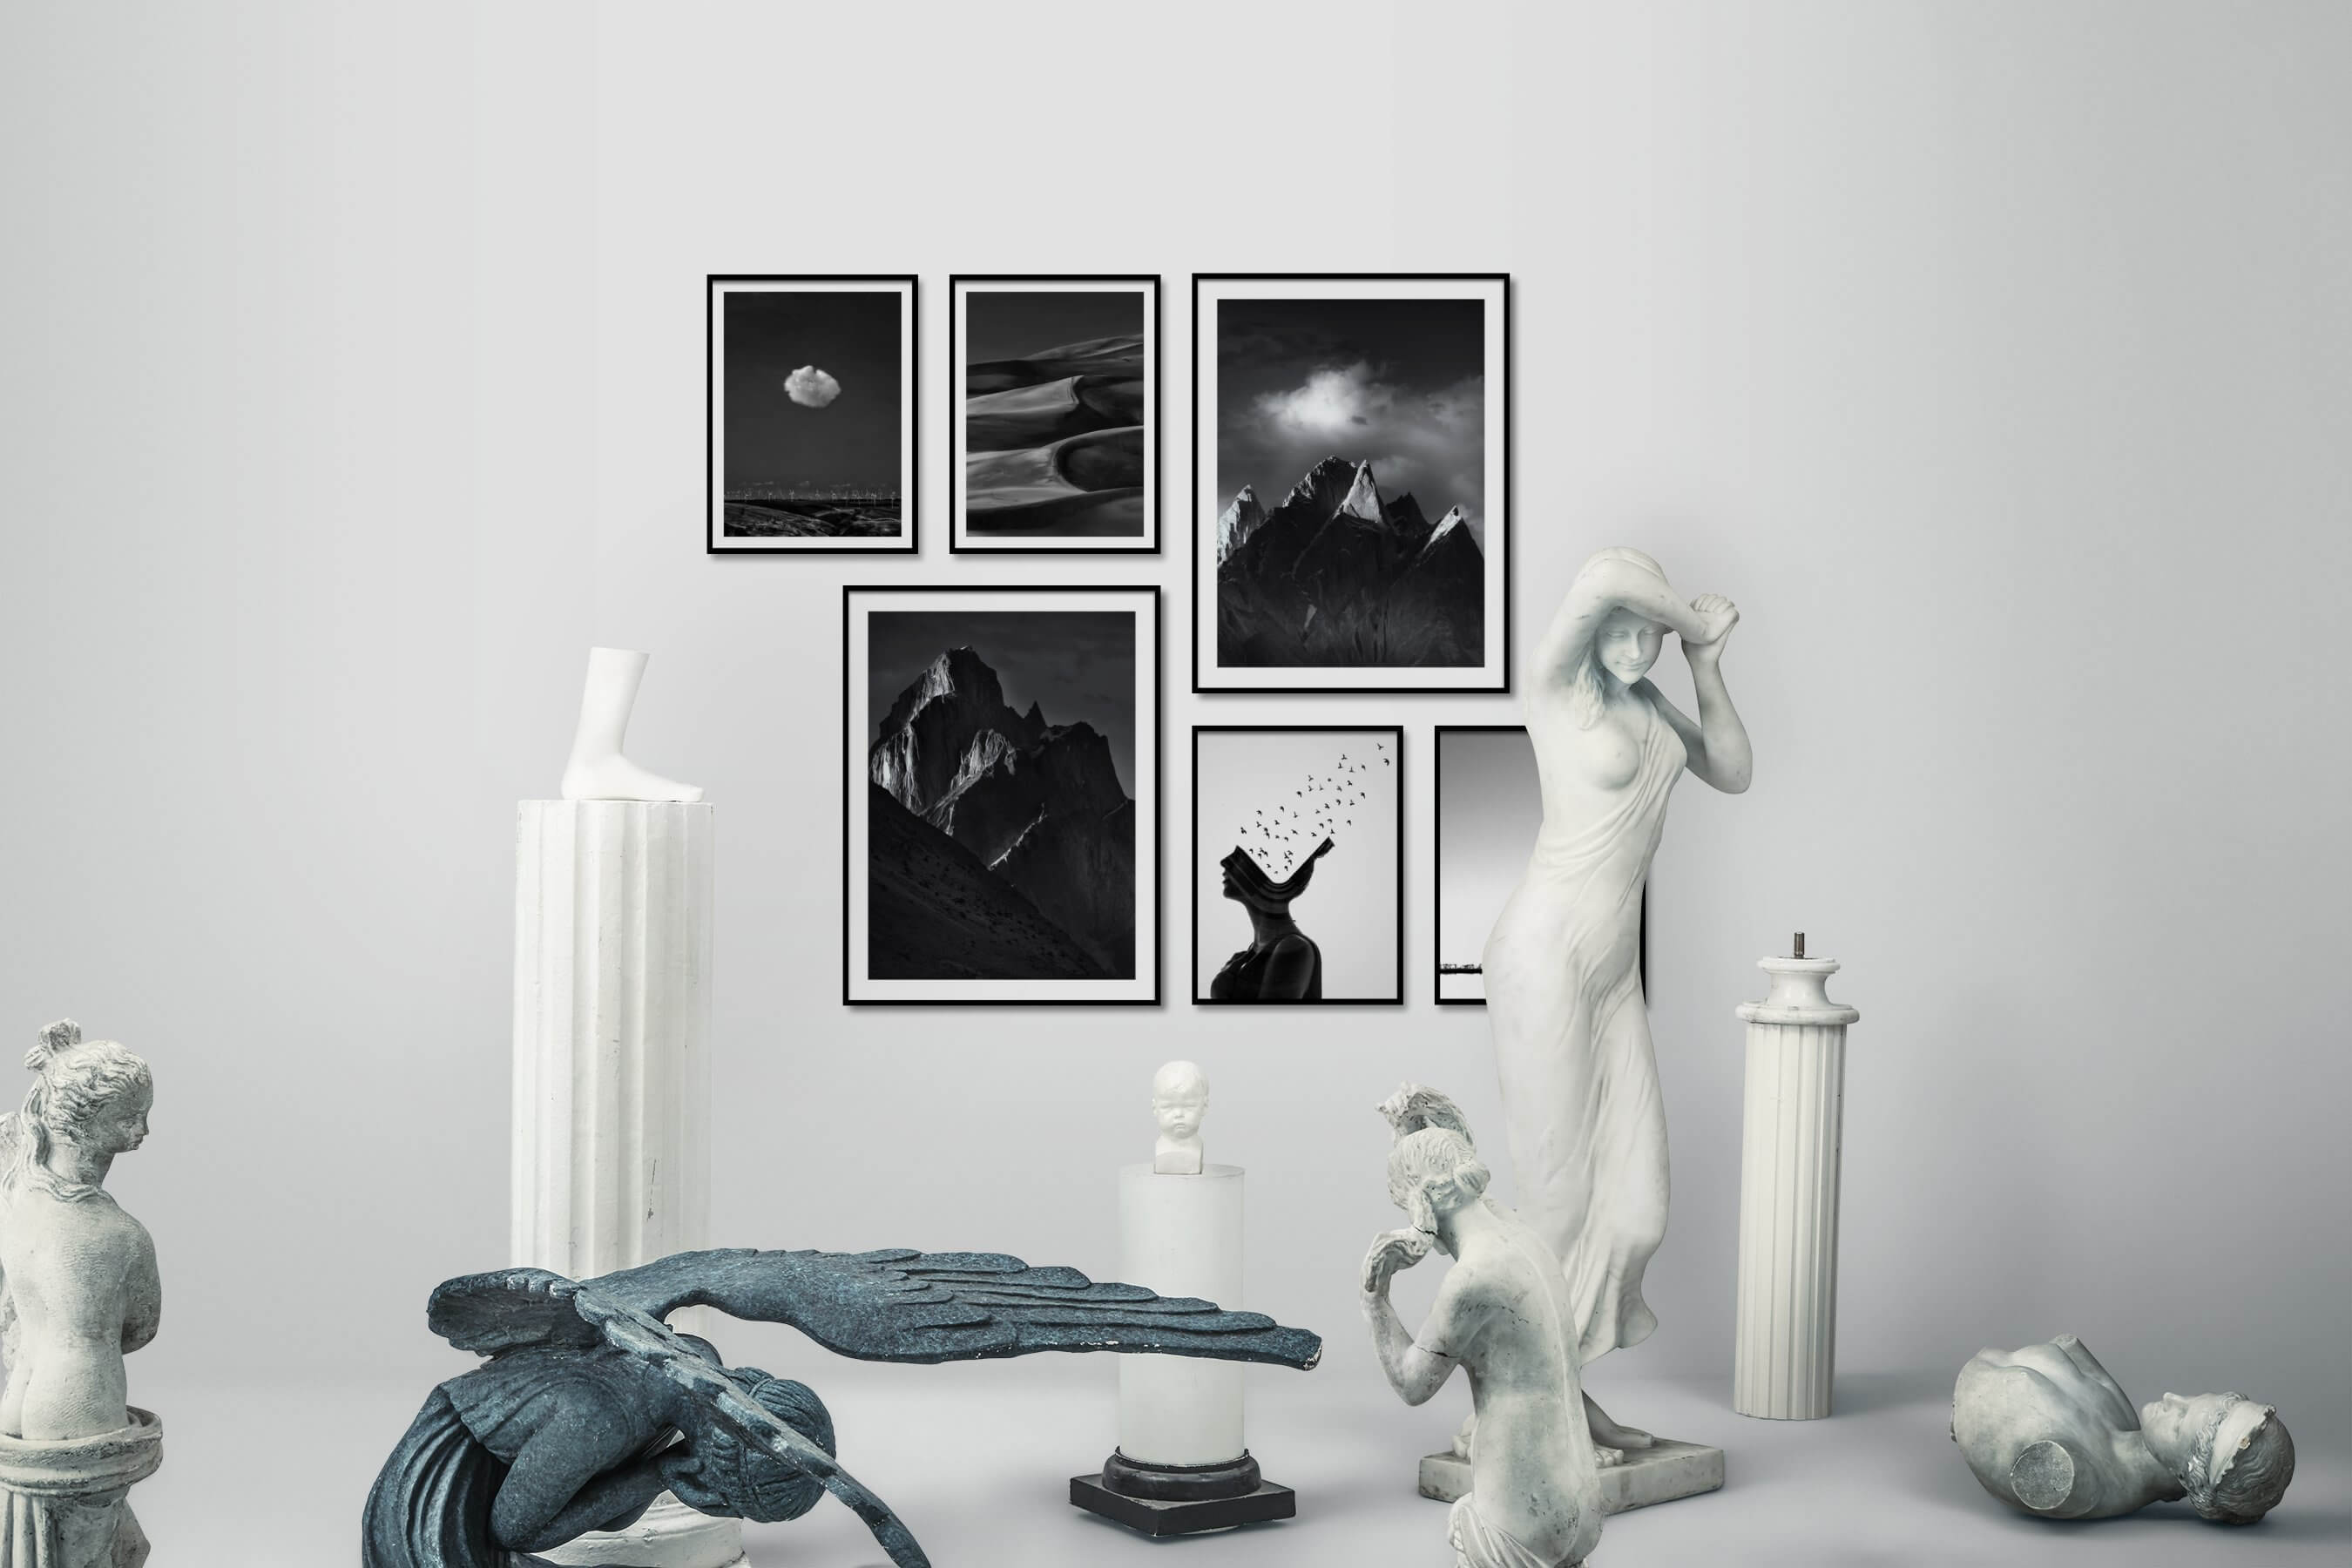 Gallery wall idea with six framed pictures arranged on a wall depicting Black & White, For the Minimalist, Country Life, Mindfulness, Nature, and Artsy